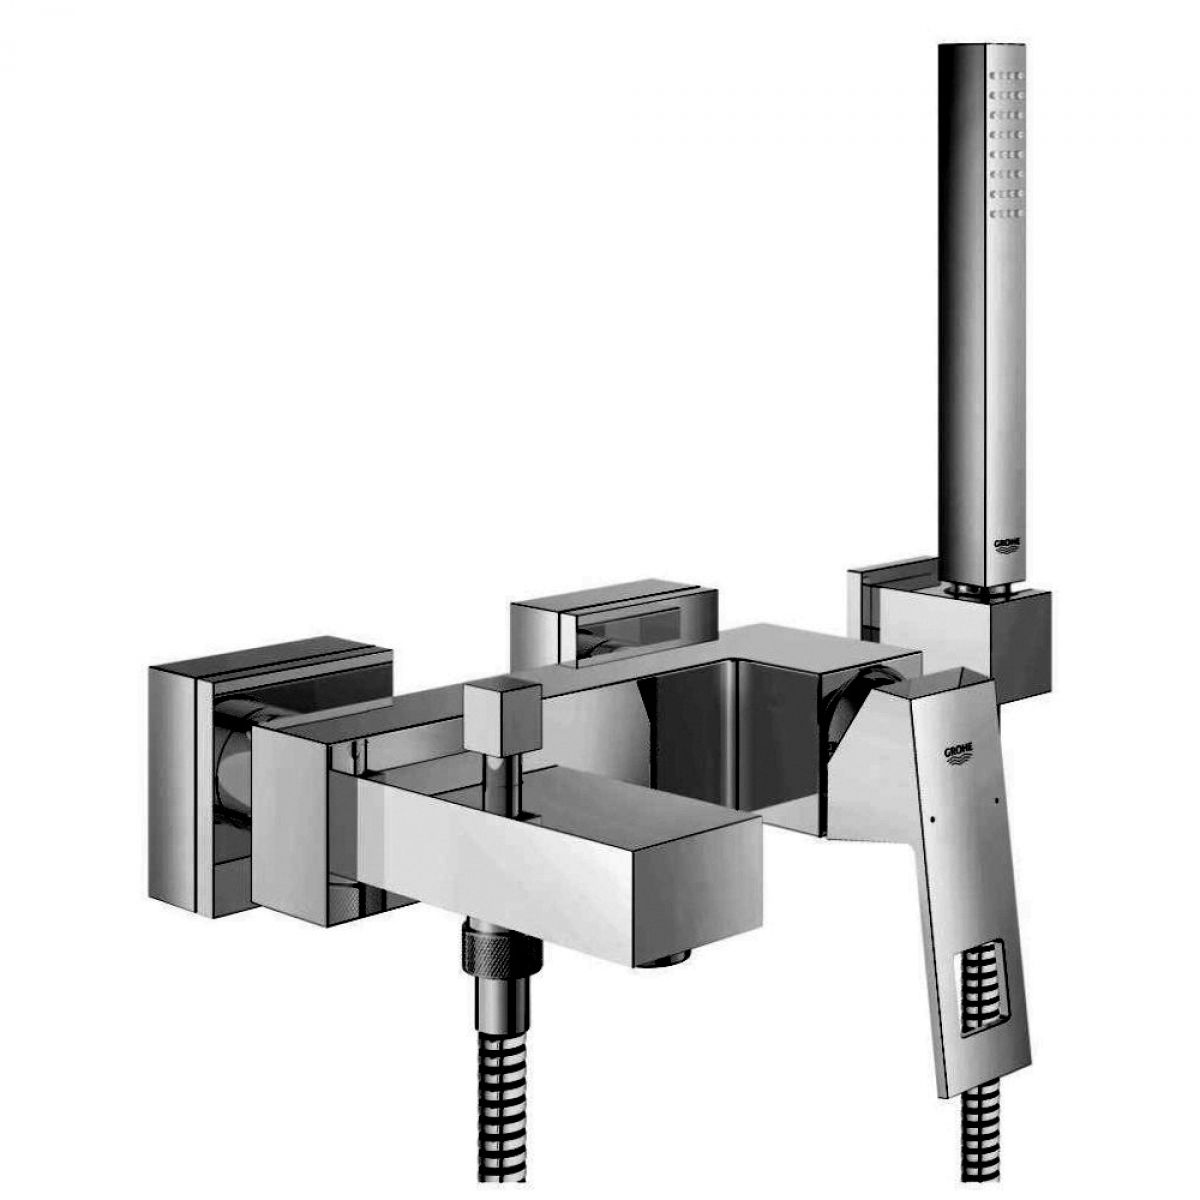 Grohe Eurocube Wall Mounted Bath/Shower Mixer : UK Bathrooms